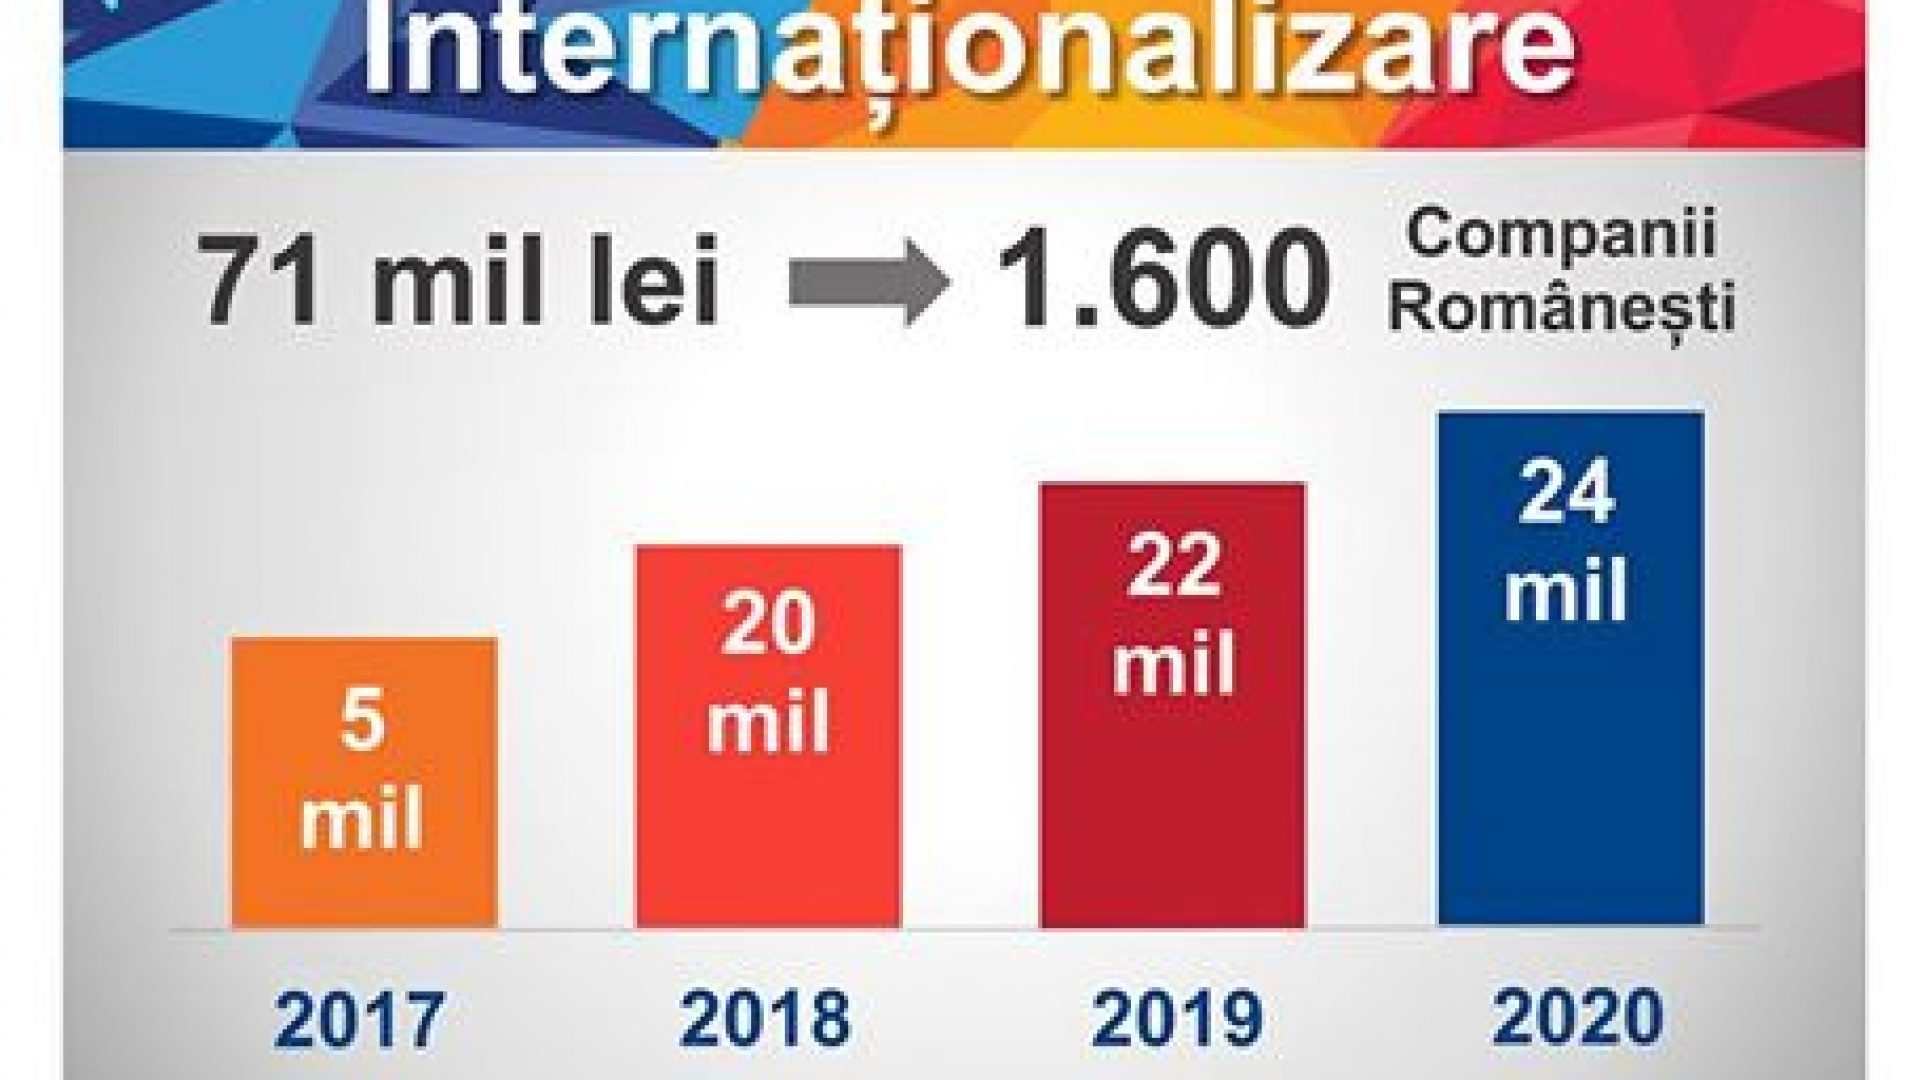 internationalizare